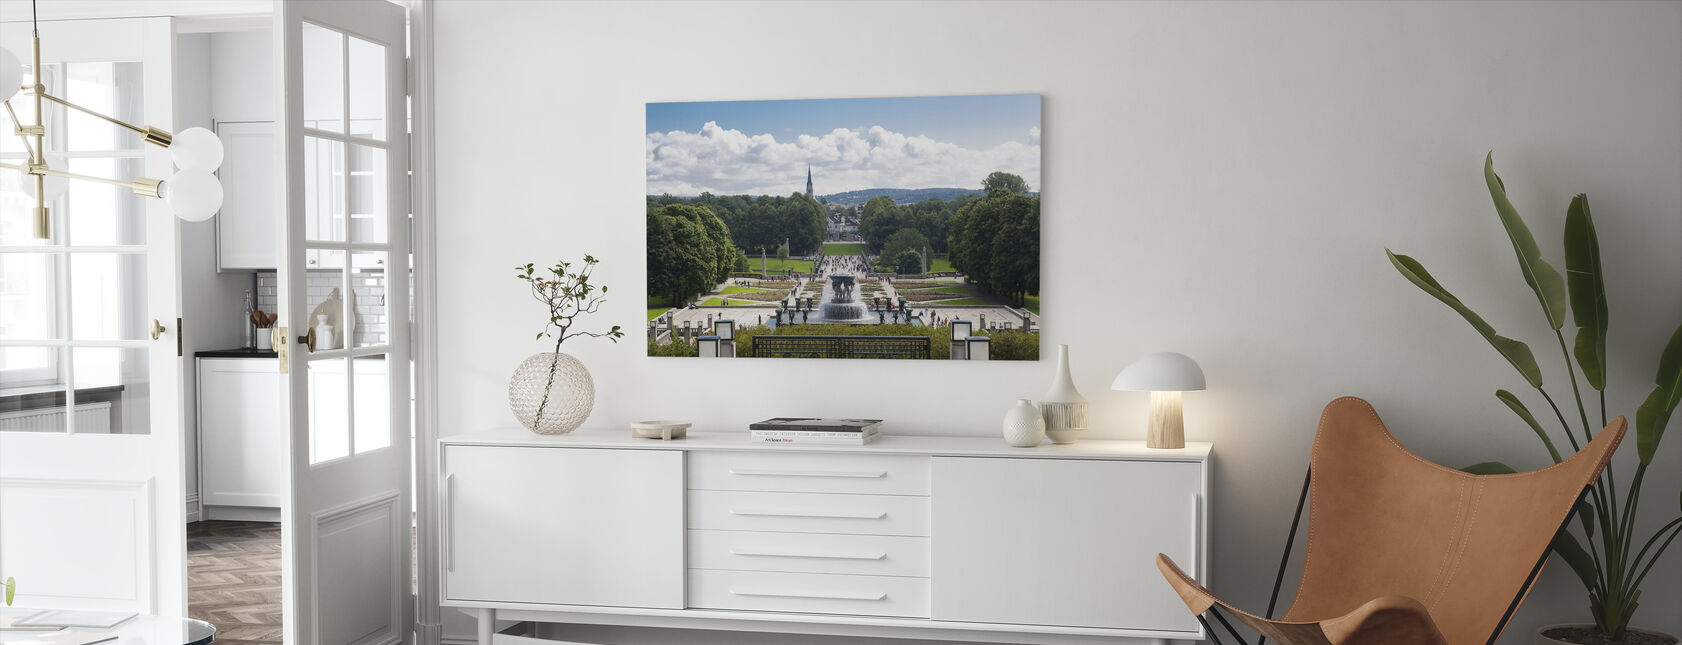 Vigeland Sculpture Park in Oslo, Norway - Canvas print - Living Room